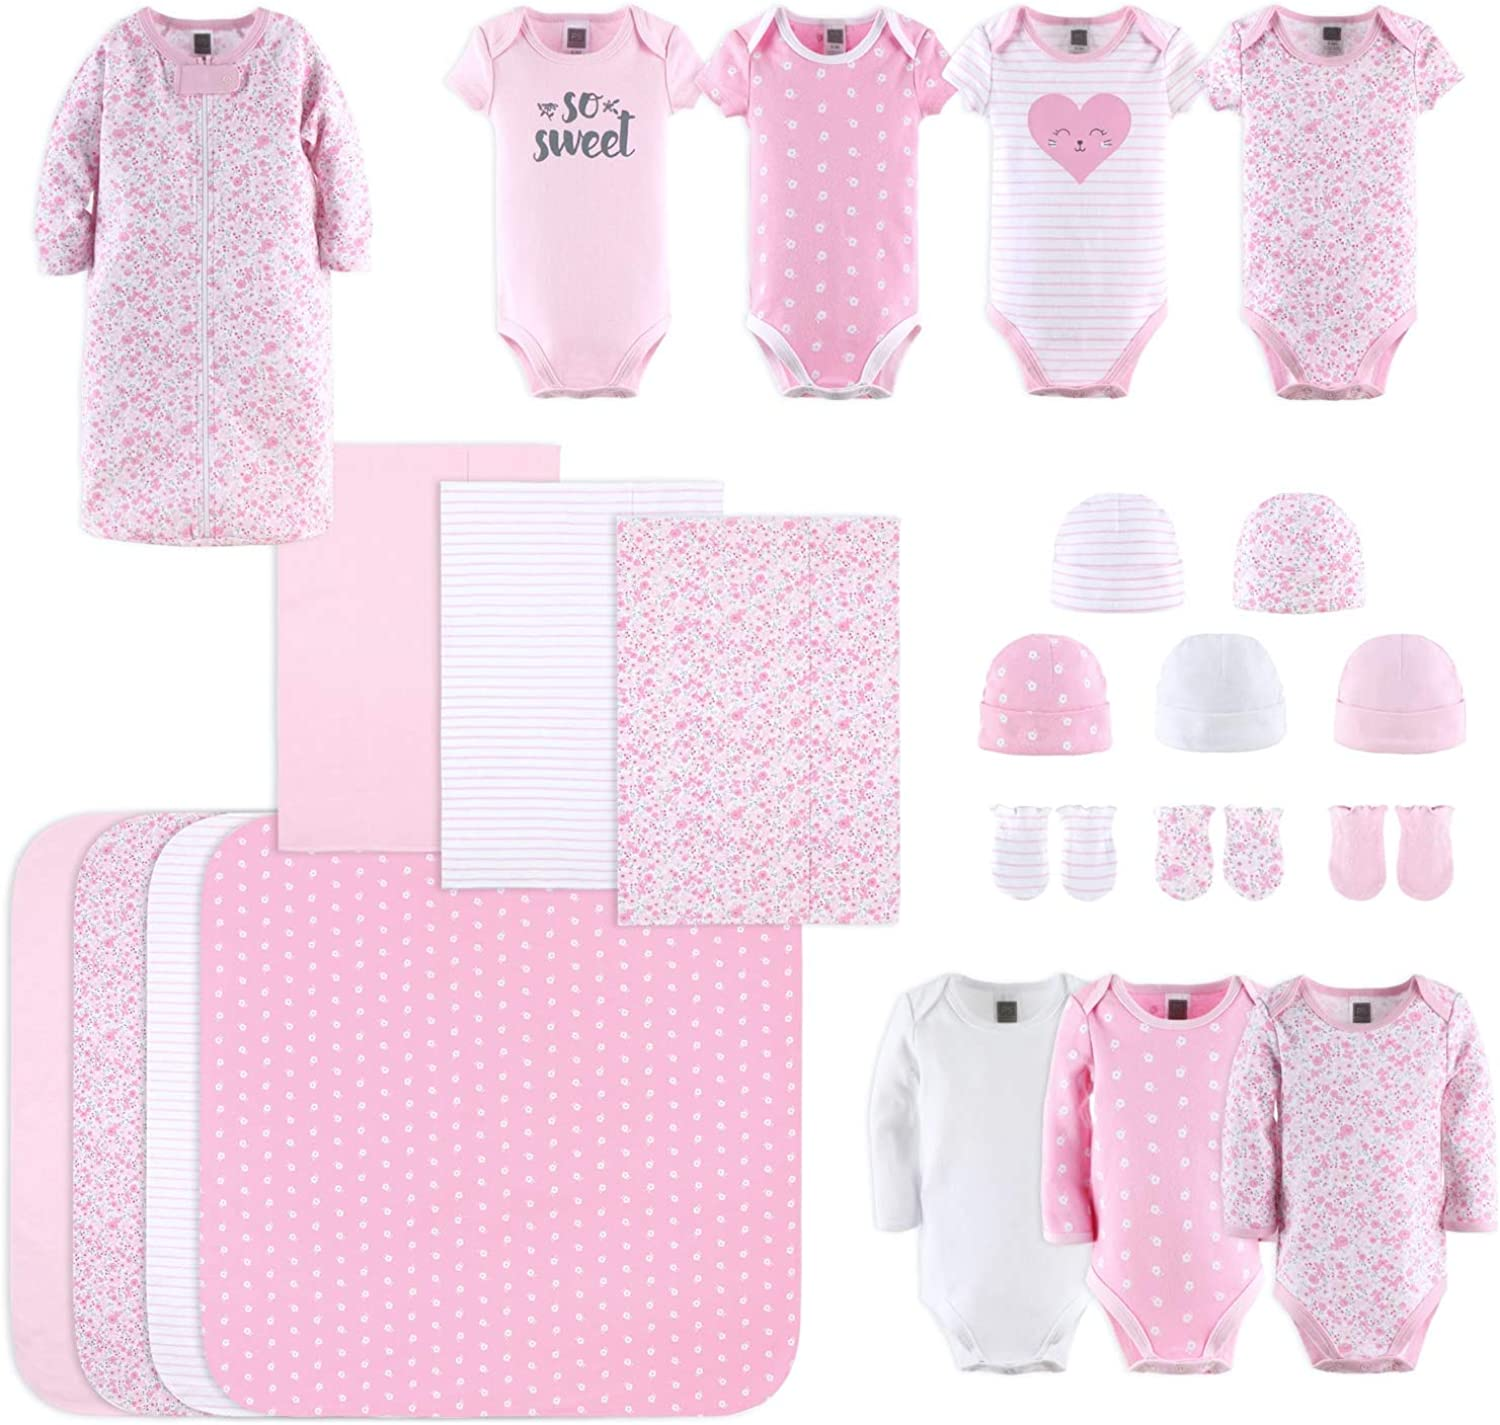 The Peanutshell Newborn Layette Gift Set for Baby Girls  8 Piece Newborn  Girl Clothes & Accessories Set  Fits Newborn to 8 Months  Floral Pink